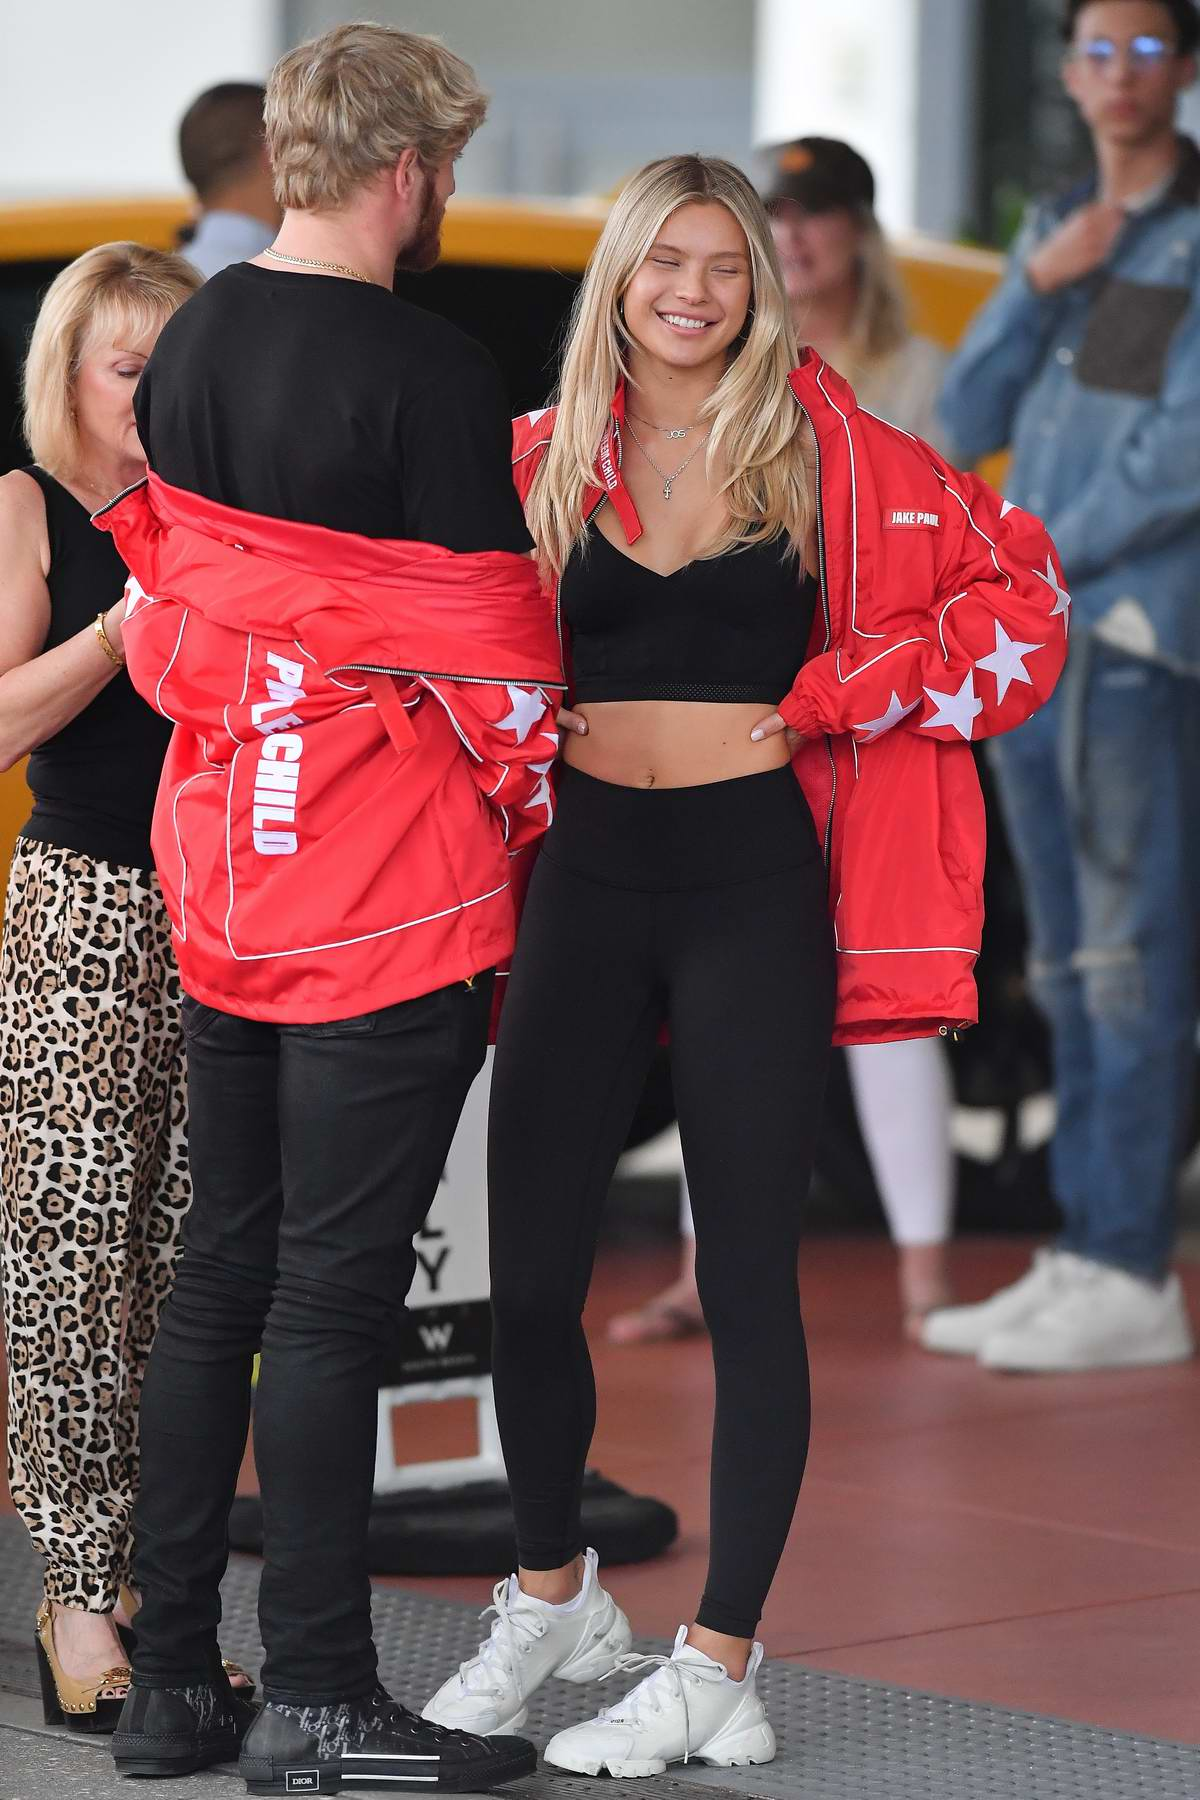 Josie Canseco wears a red jacket with black top and leggings while out with boyfriend Logan Paul in Miami, Florida